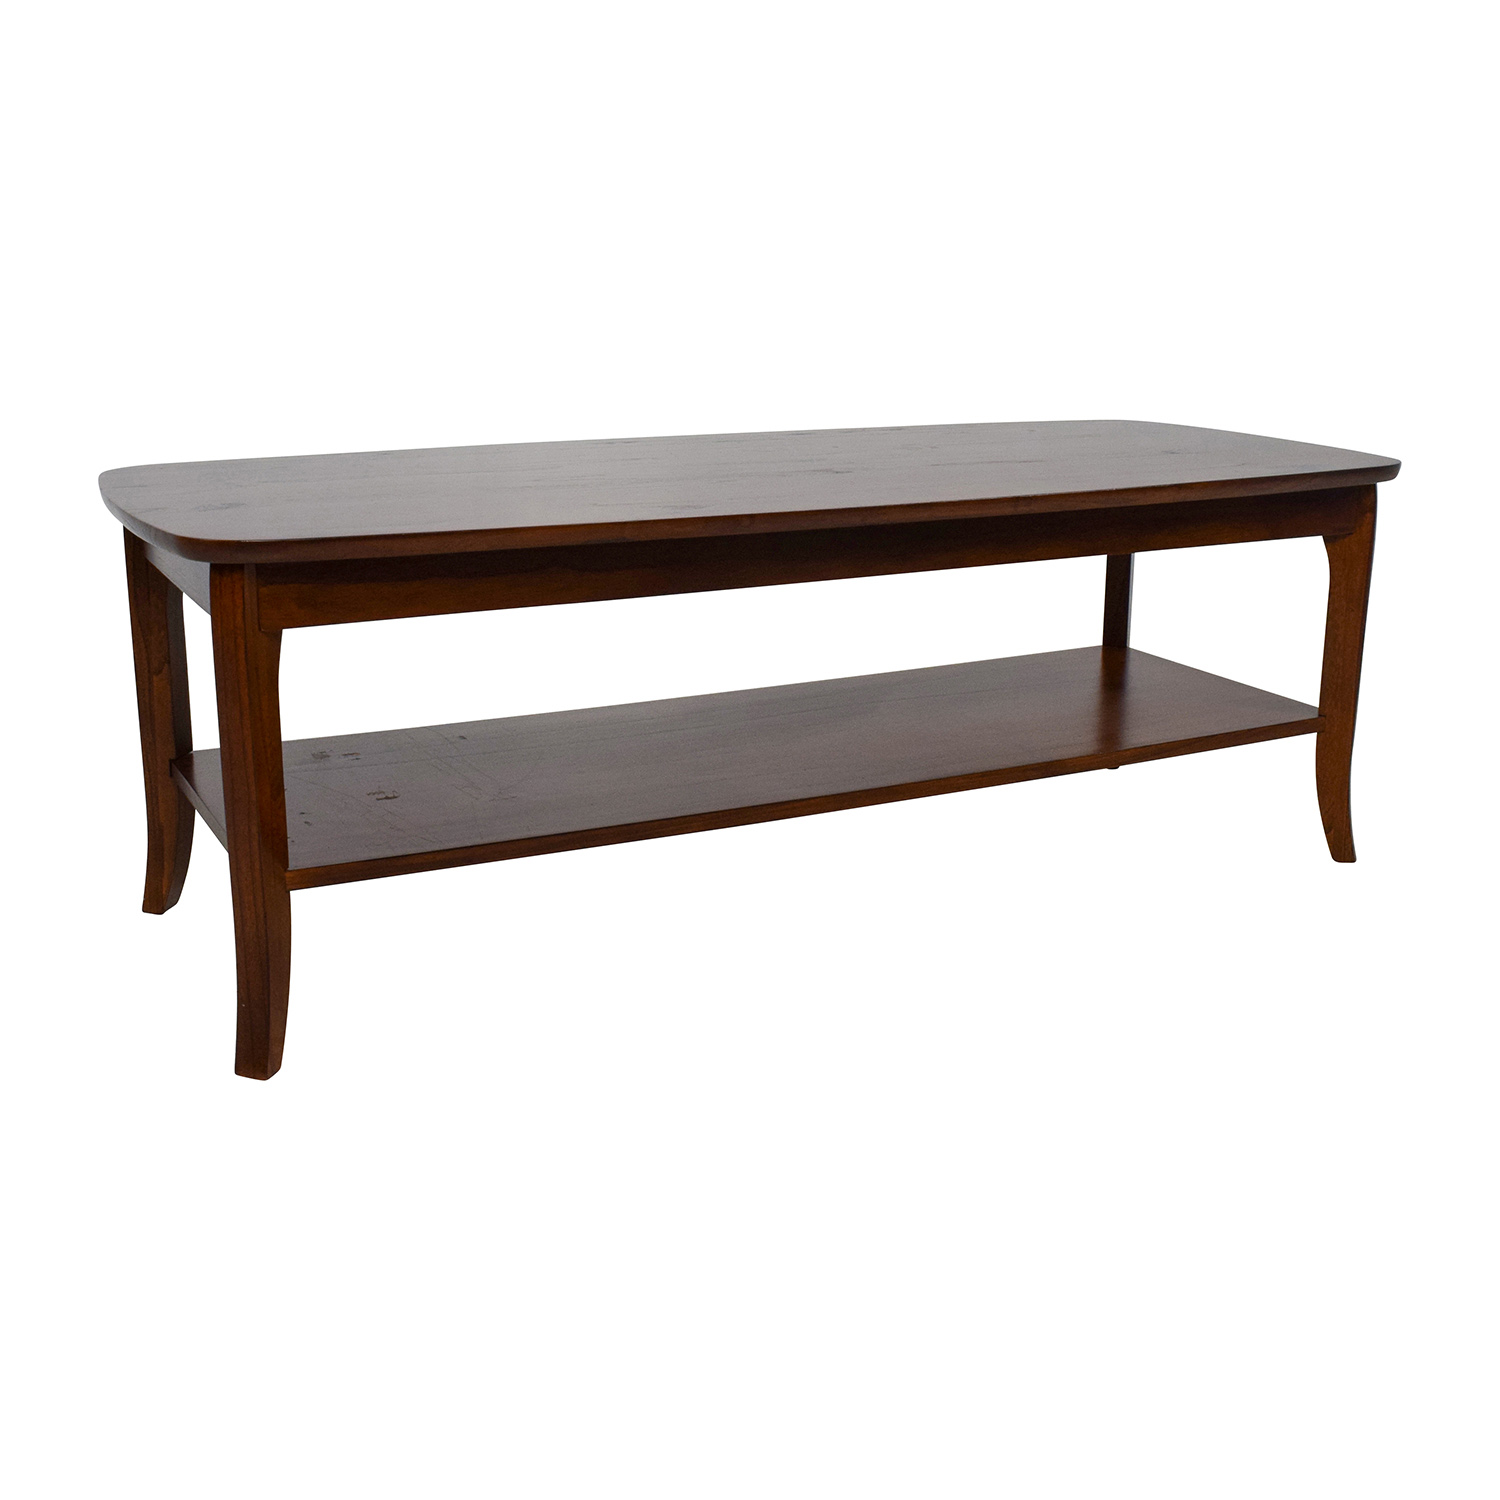 71% OFF Pottery Barn Pottery Barn Chloe Rectangular Coffee table